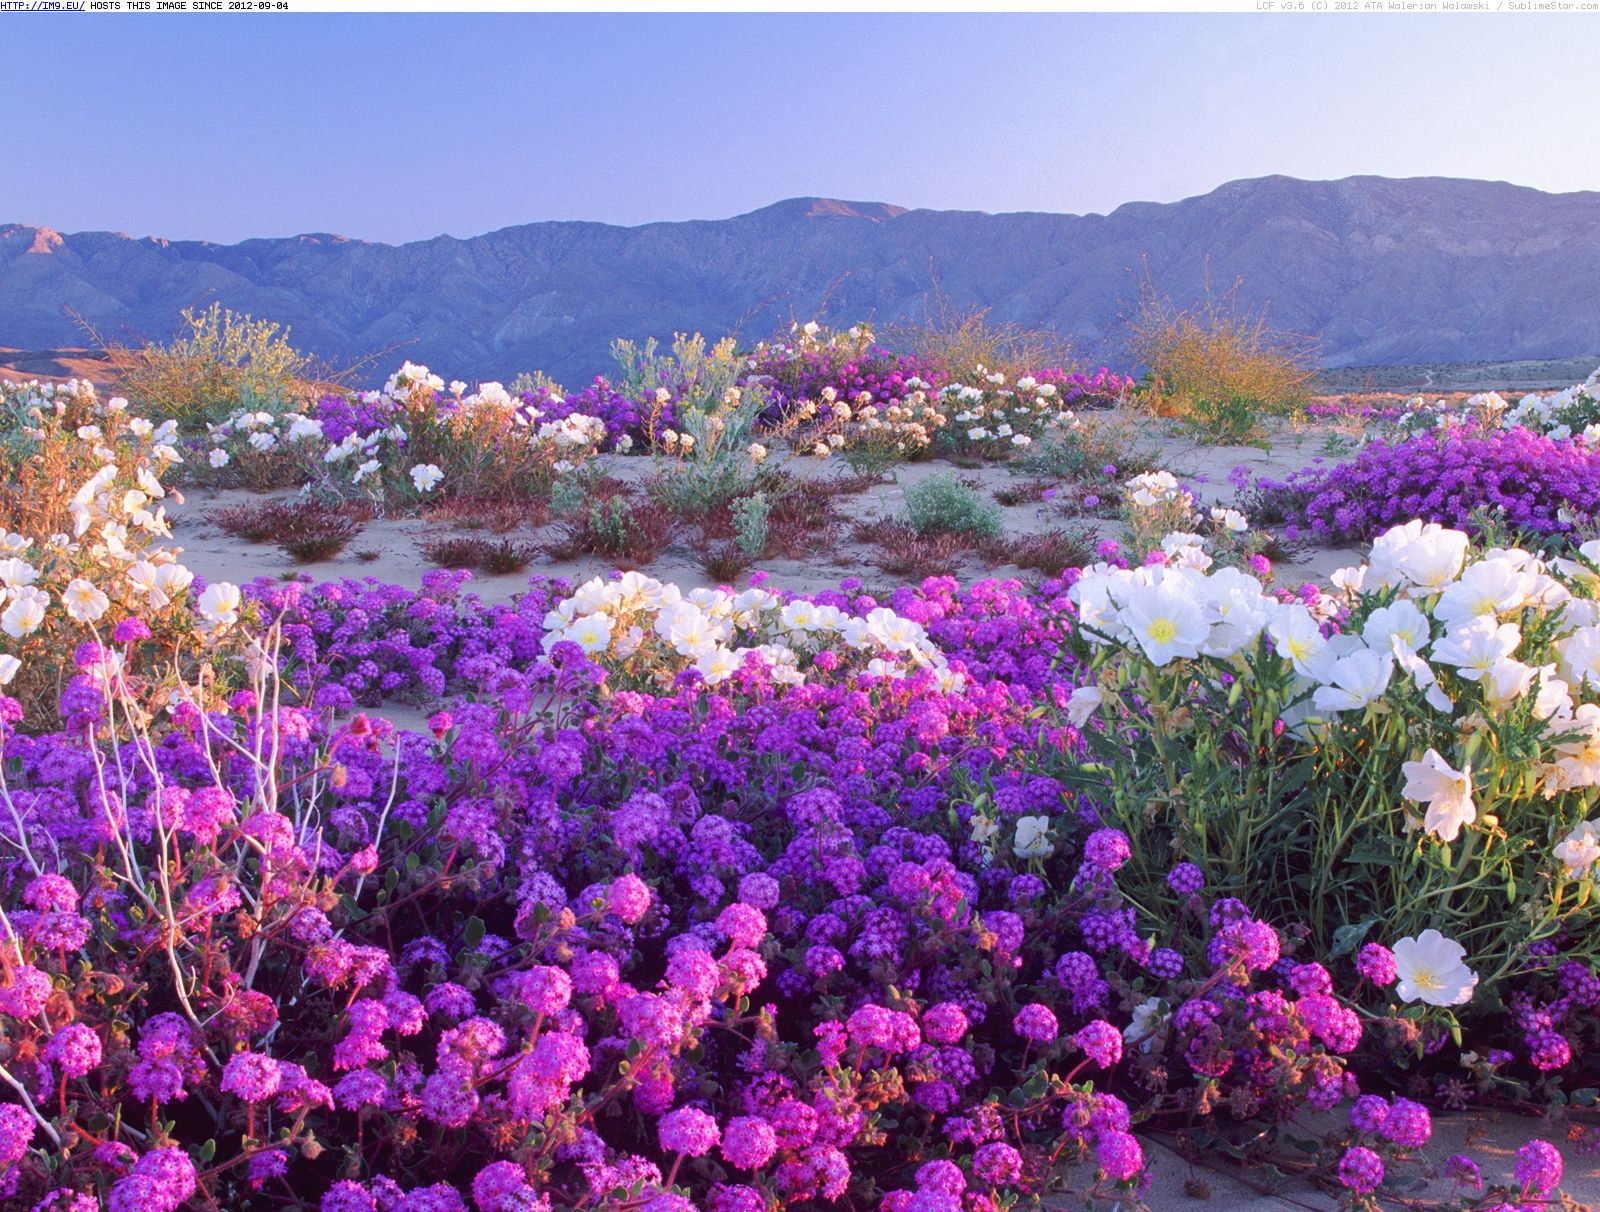 Places to Wander the Wildflowers this Spring   The Confessioness desert flowers anza borrego desert state park california       10995131 614868705280414 1463645460 n